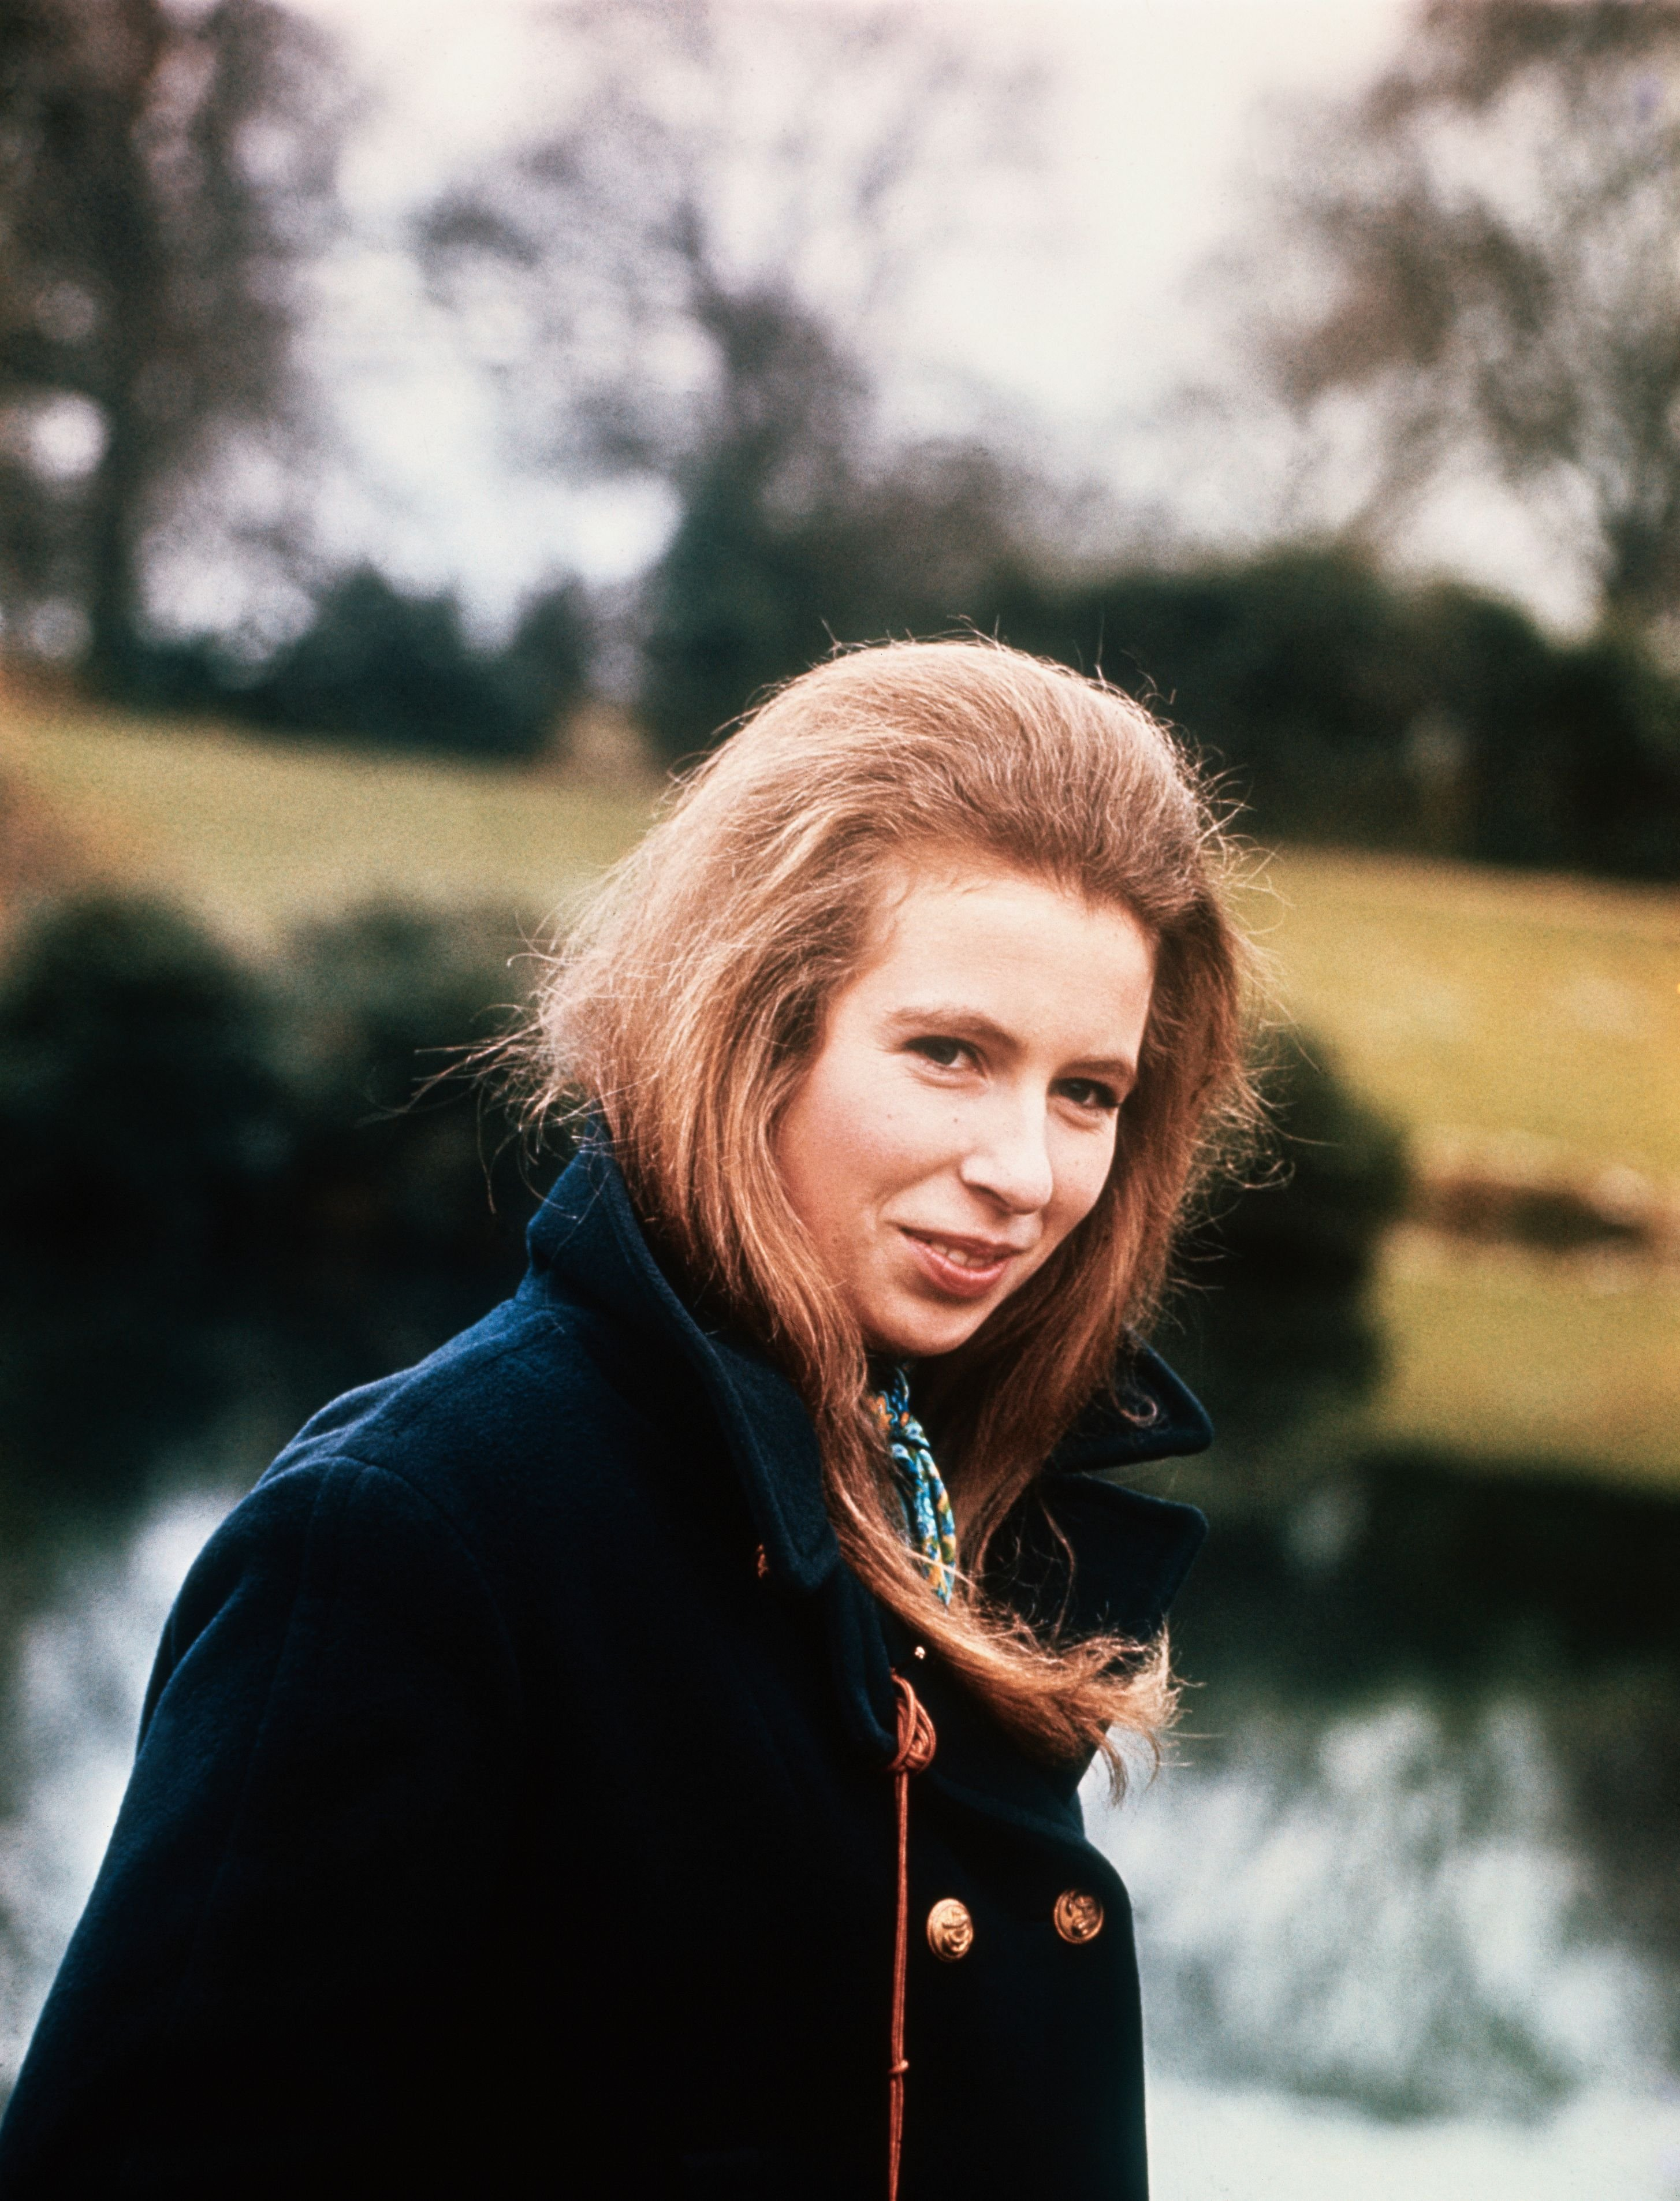 Princess Anne, 19, walking the grounds of Sandringham, the Royal Family's country residence. | Source: Getty Images